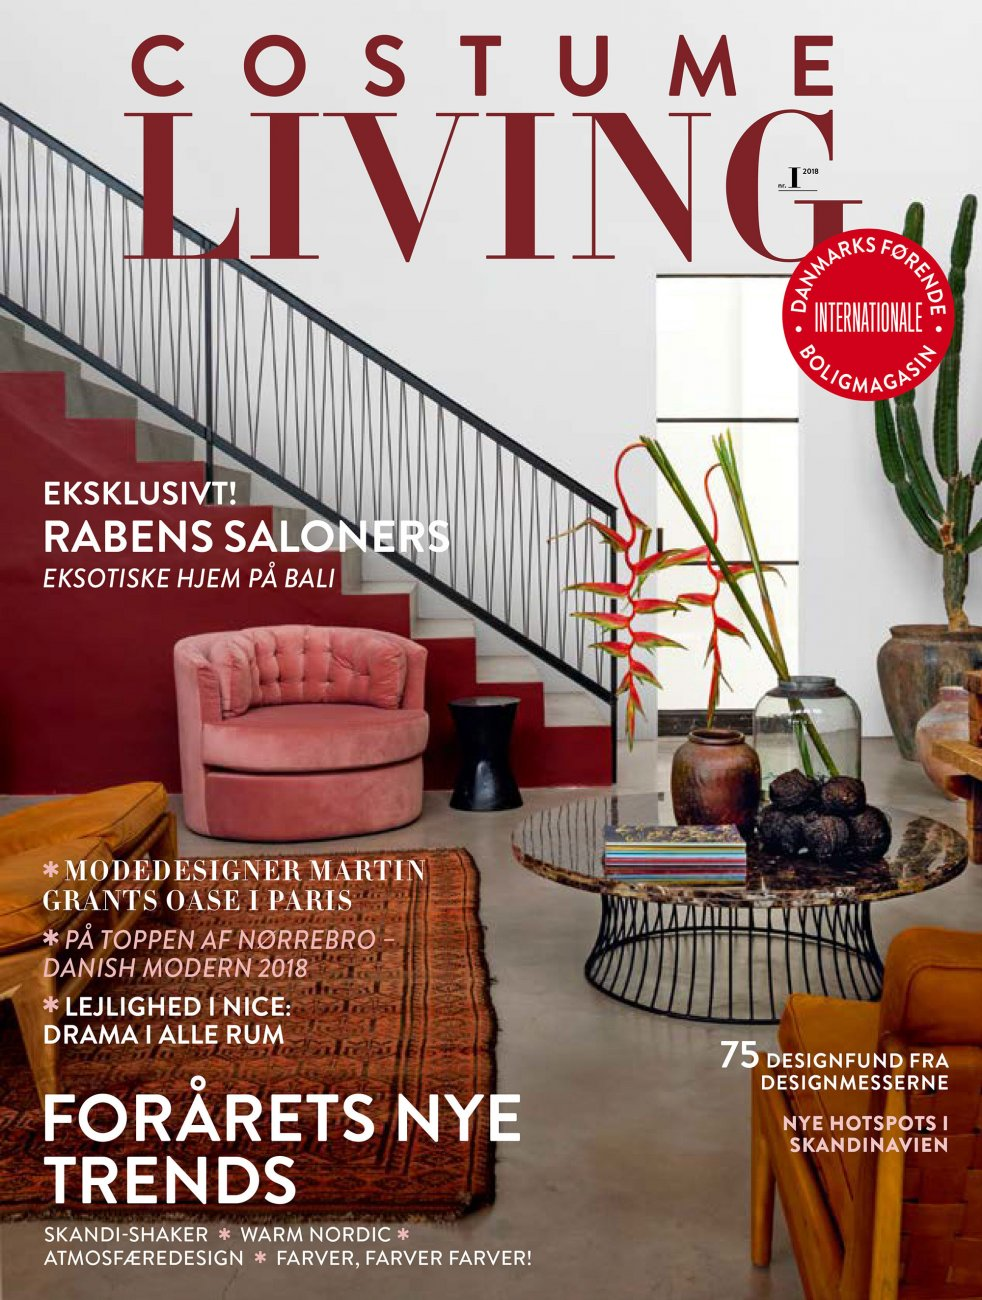 Costume Living / Janvier 2018 / Costume Living